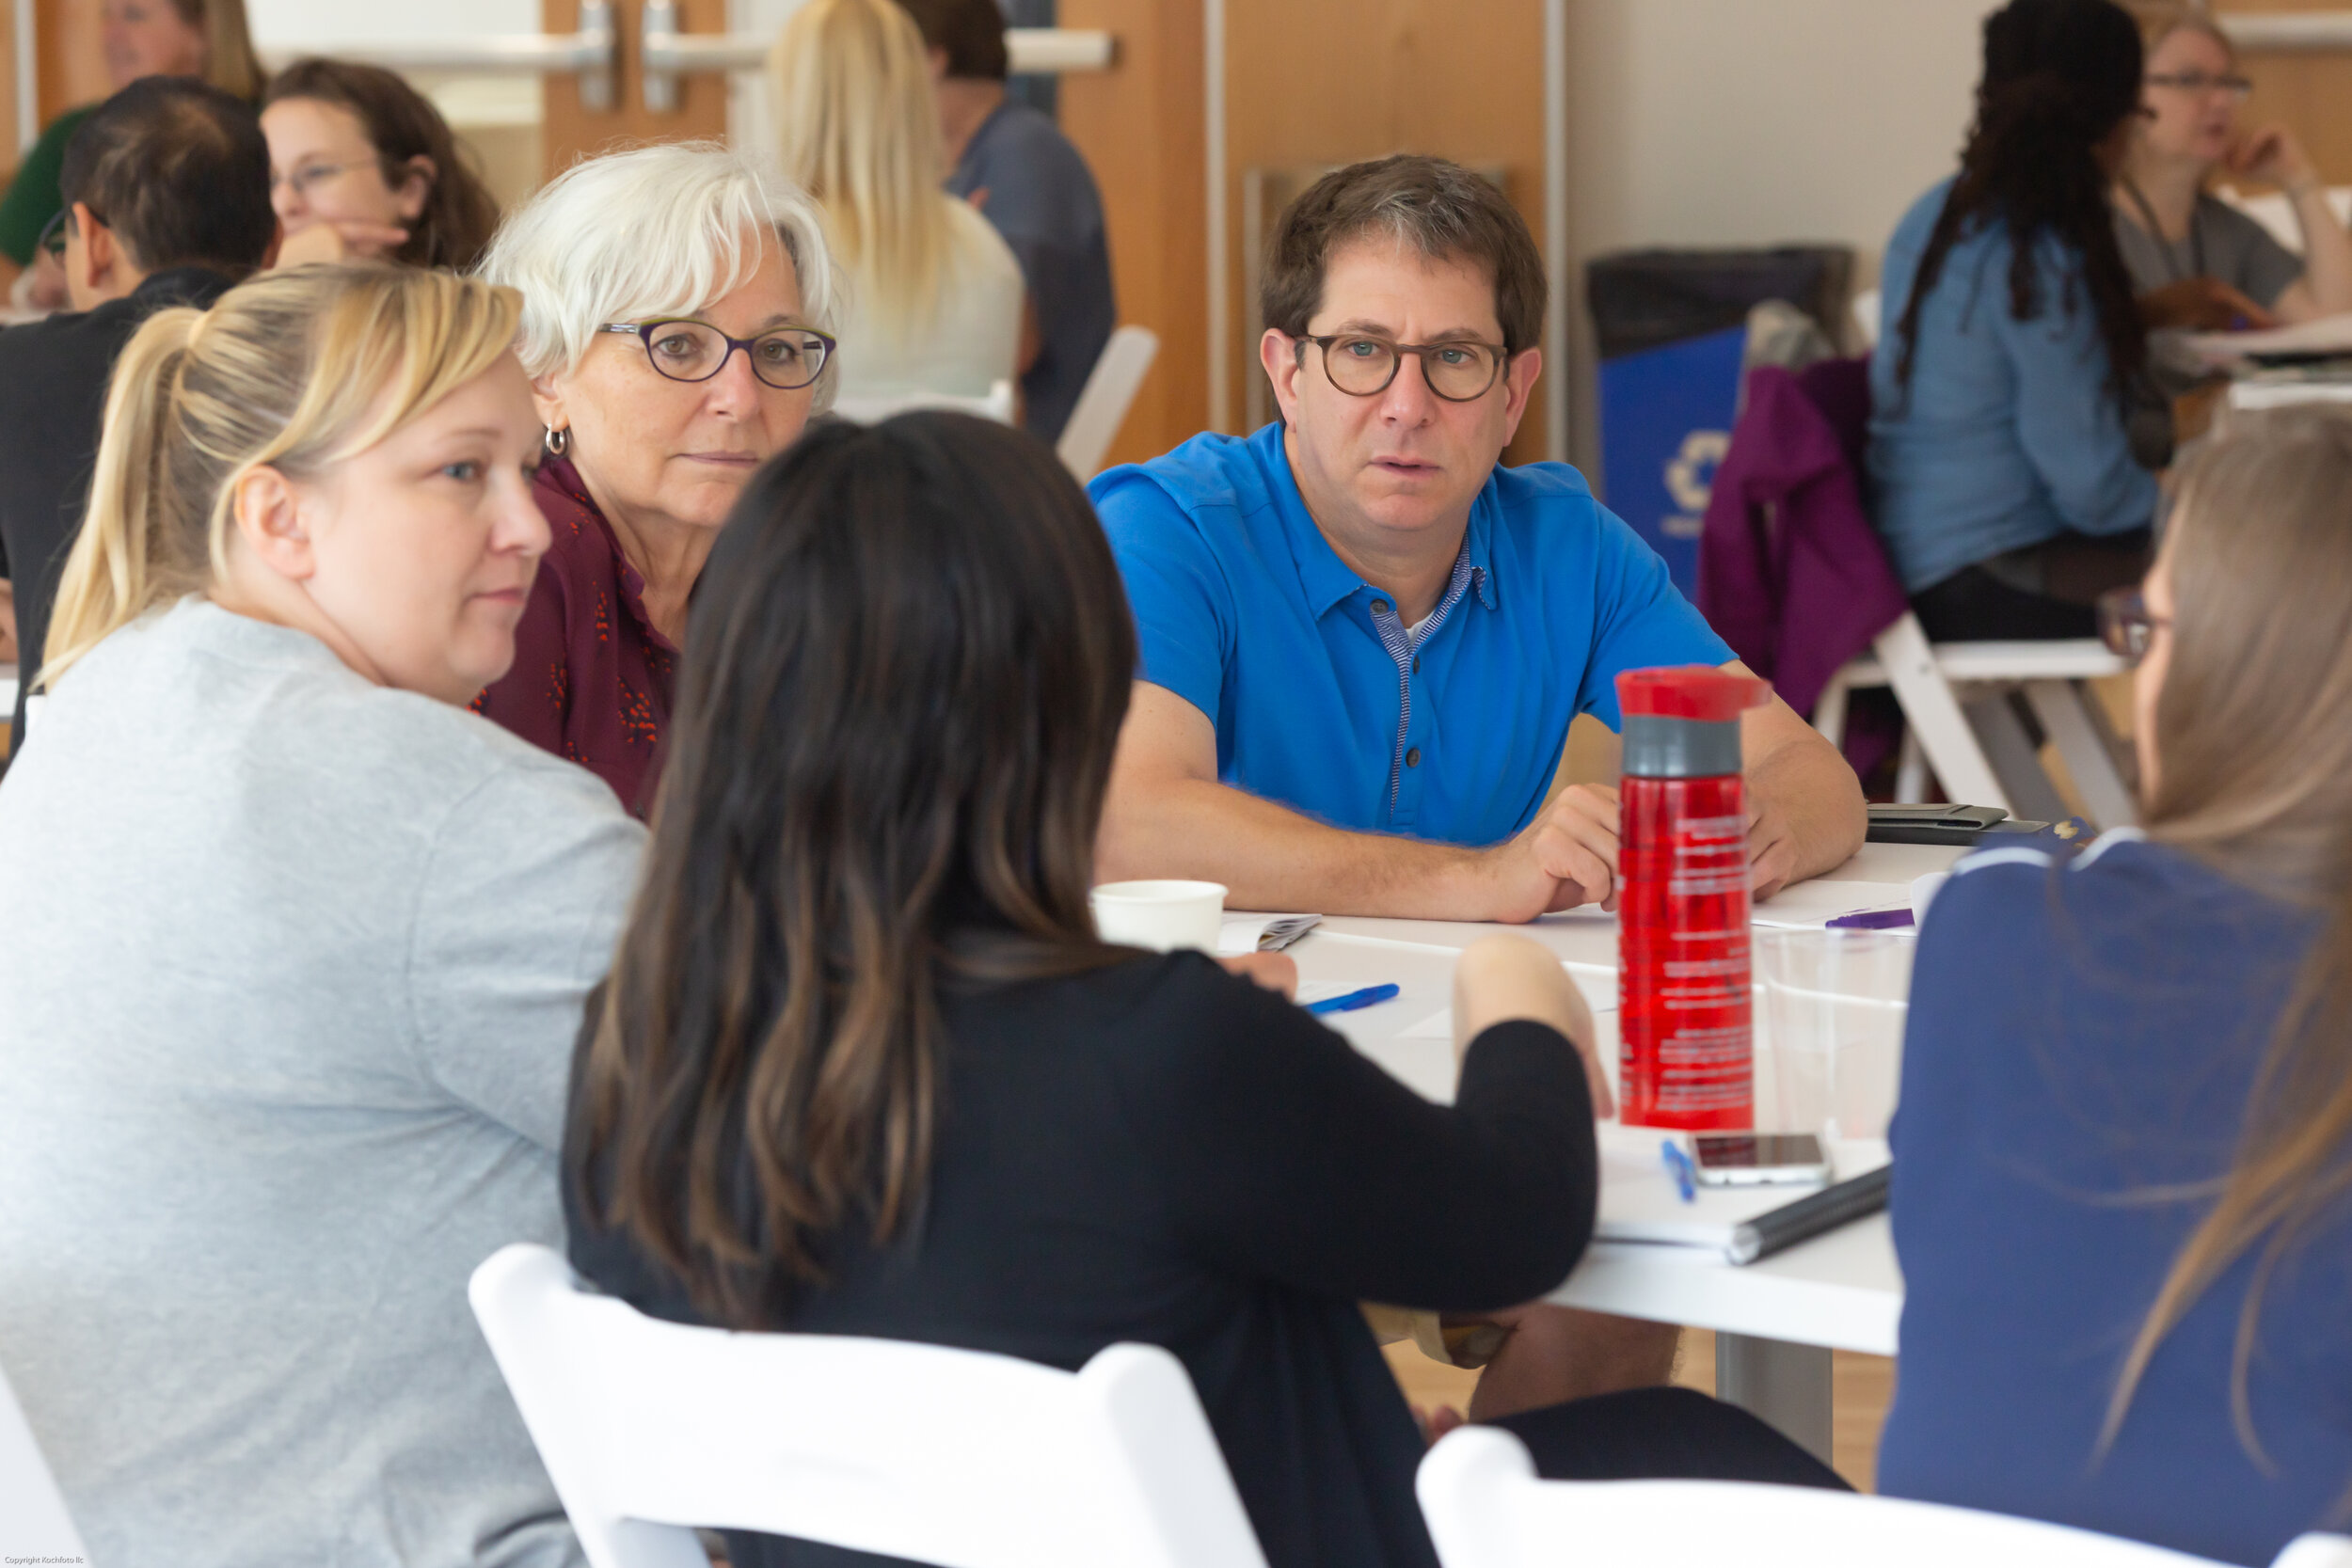 St. Andrew's teachers joined educators from around the country to take a deep dive into Mind, Brain, and Education Science (MBE) research at the CTTL's Science of Teaching and School Leadership Academy in July 2019.